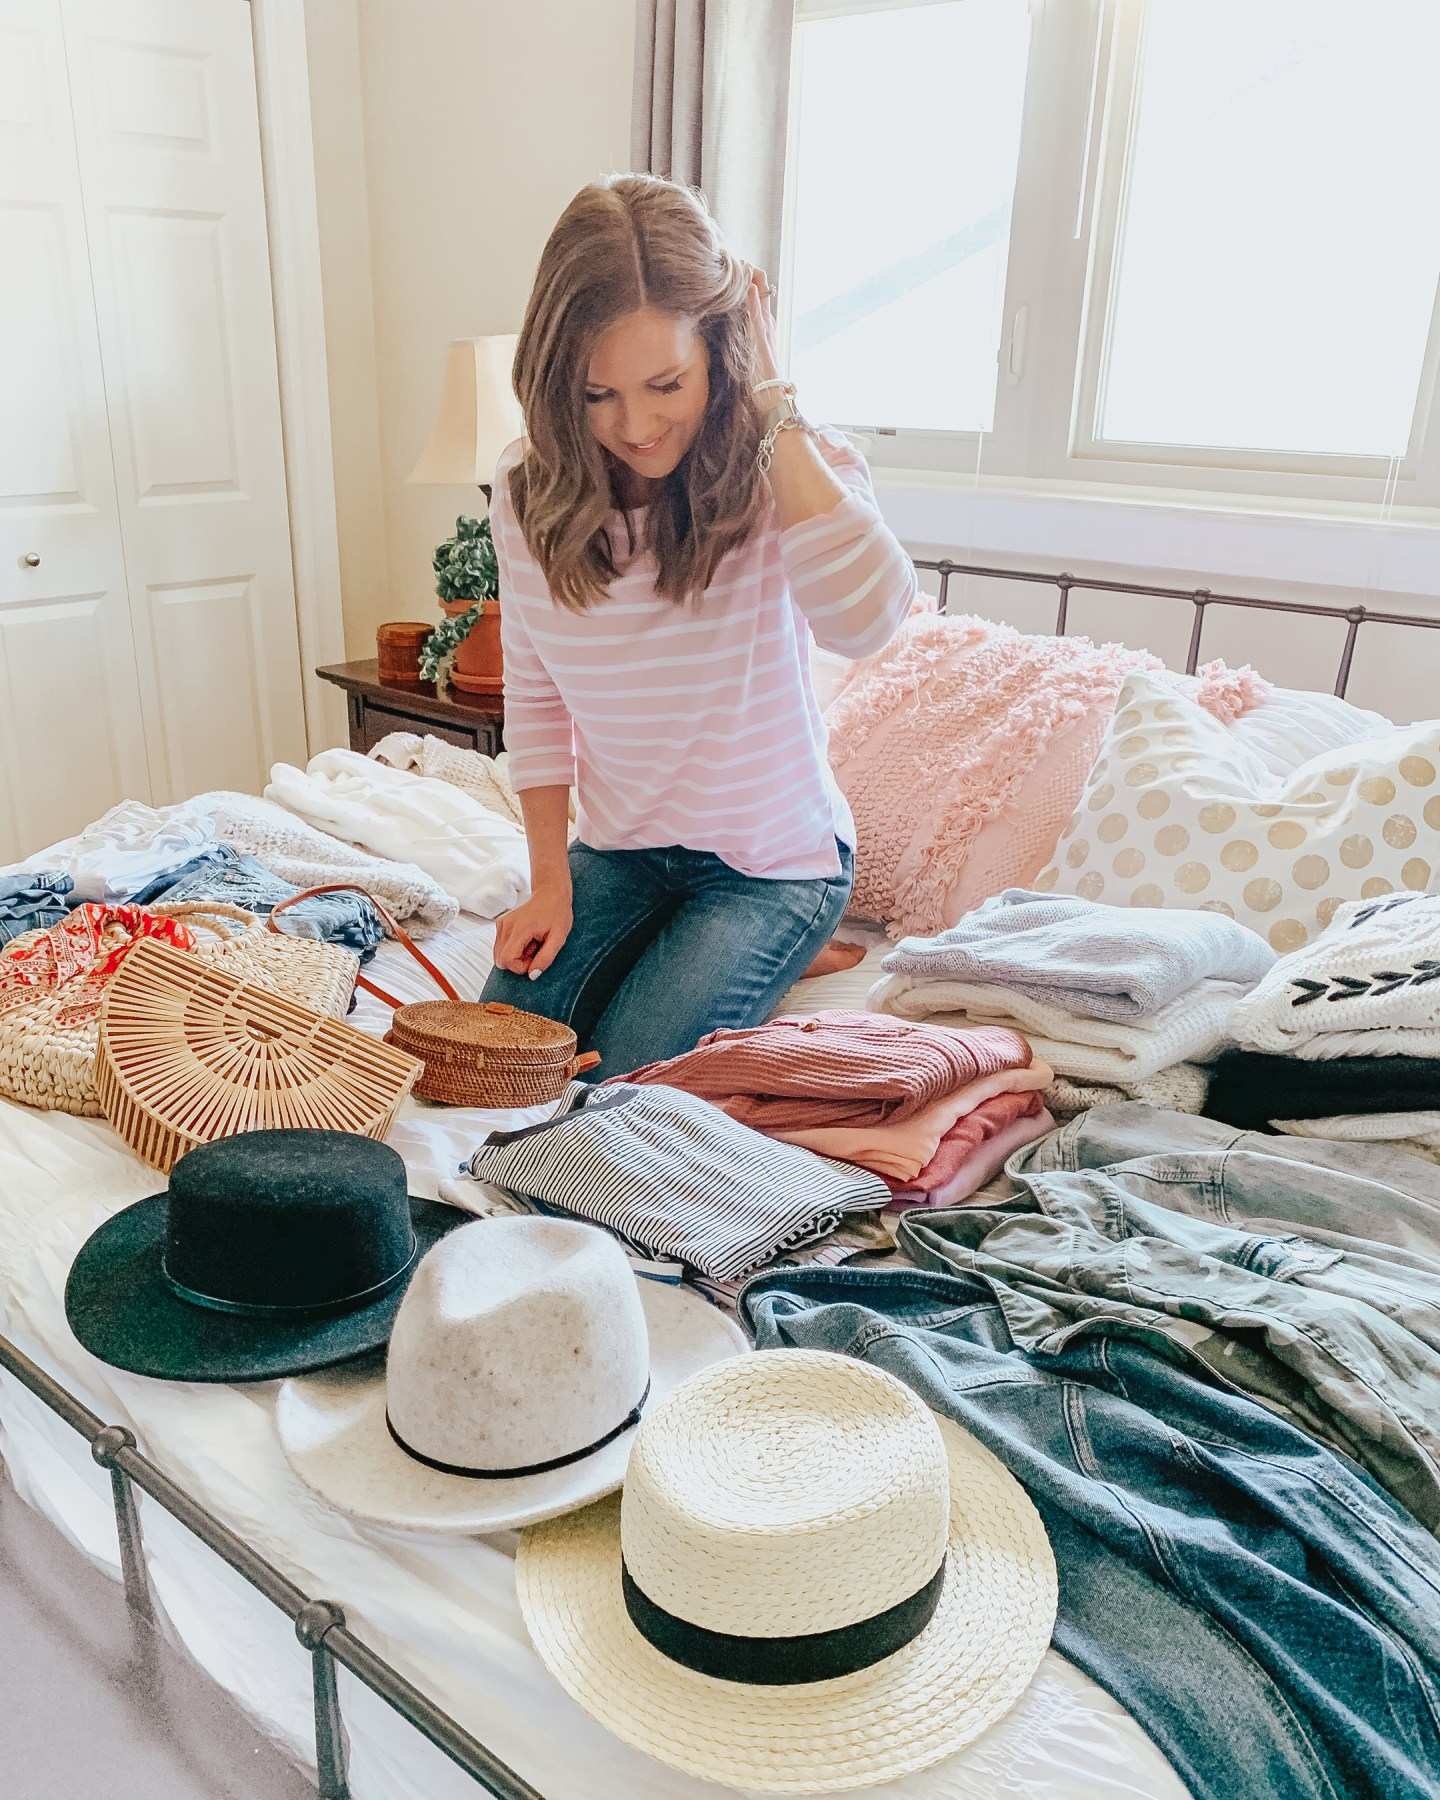 Organizing Your Bedroom Closet, Get More Out of Your Clothes, how to clean out your closet, closet organization, spring wardrobe, wardrobe basics